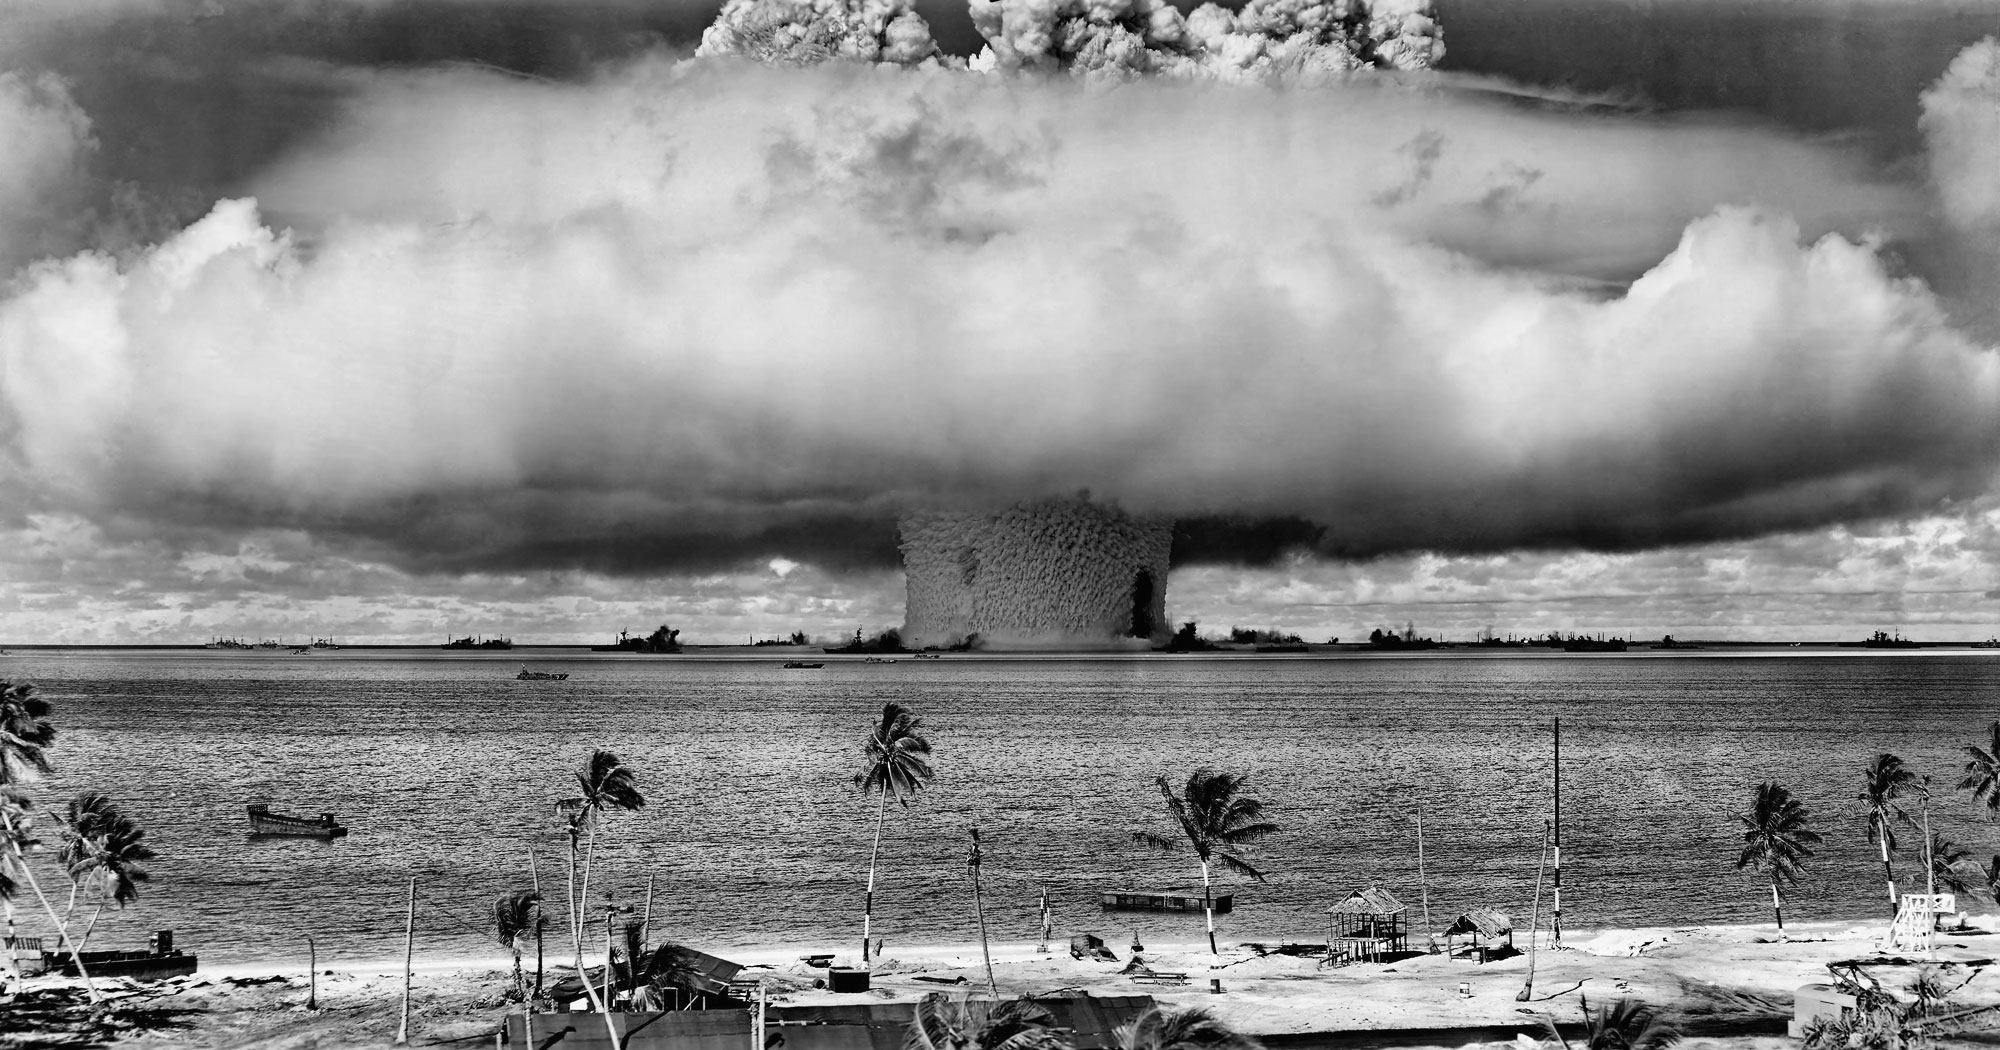 Seemorerocks: The Day After - on the threat of nuclear weapons